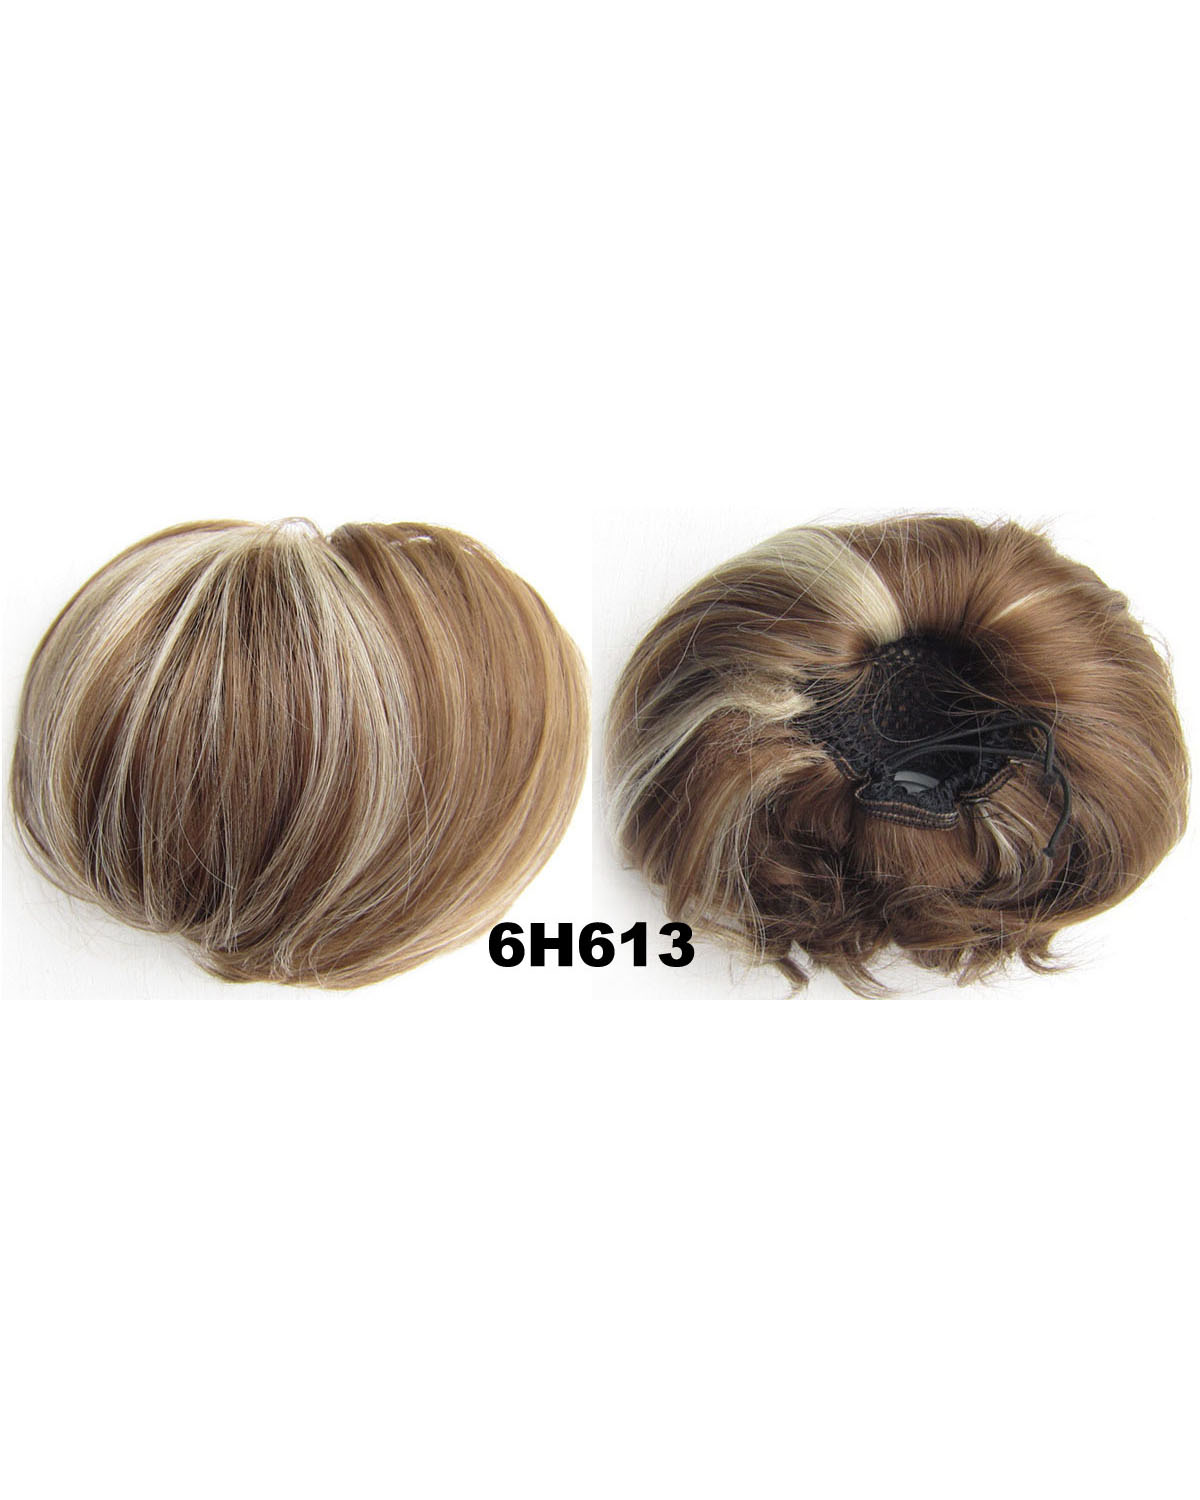 Ladies Thick Straight Short Hair Buns Drawstring Synthetic Hair Extension Bride Scrunchies  6H613